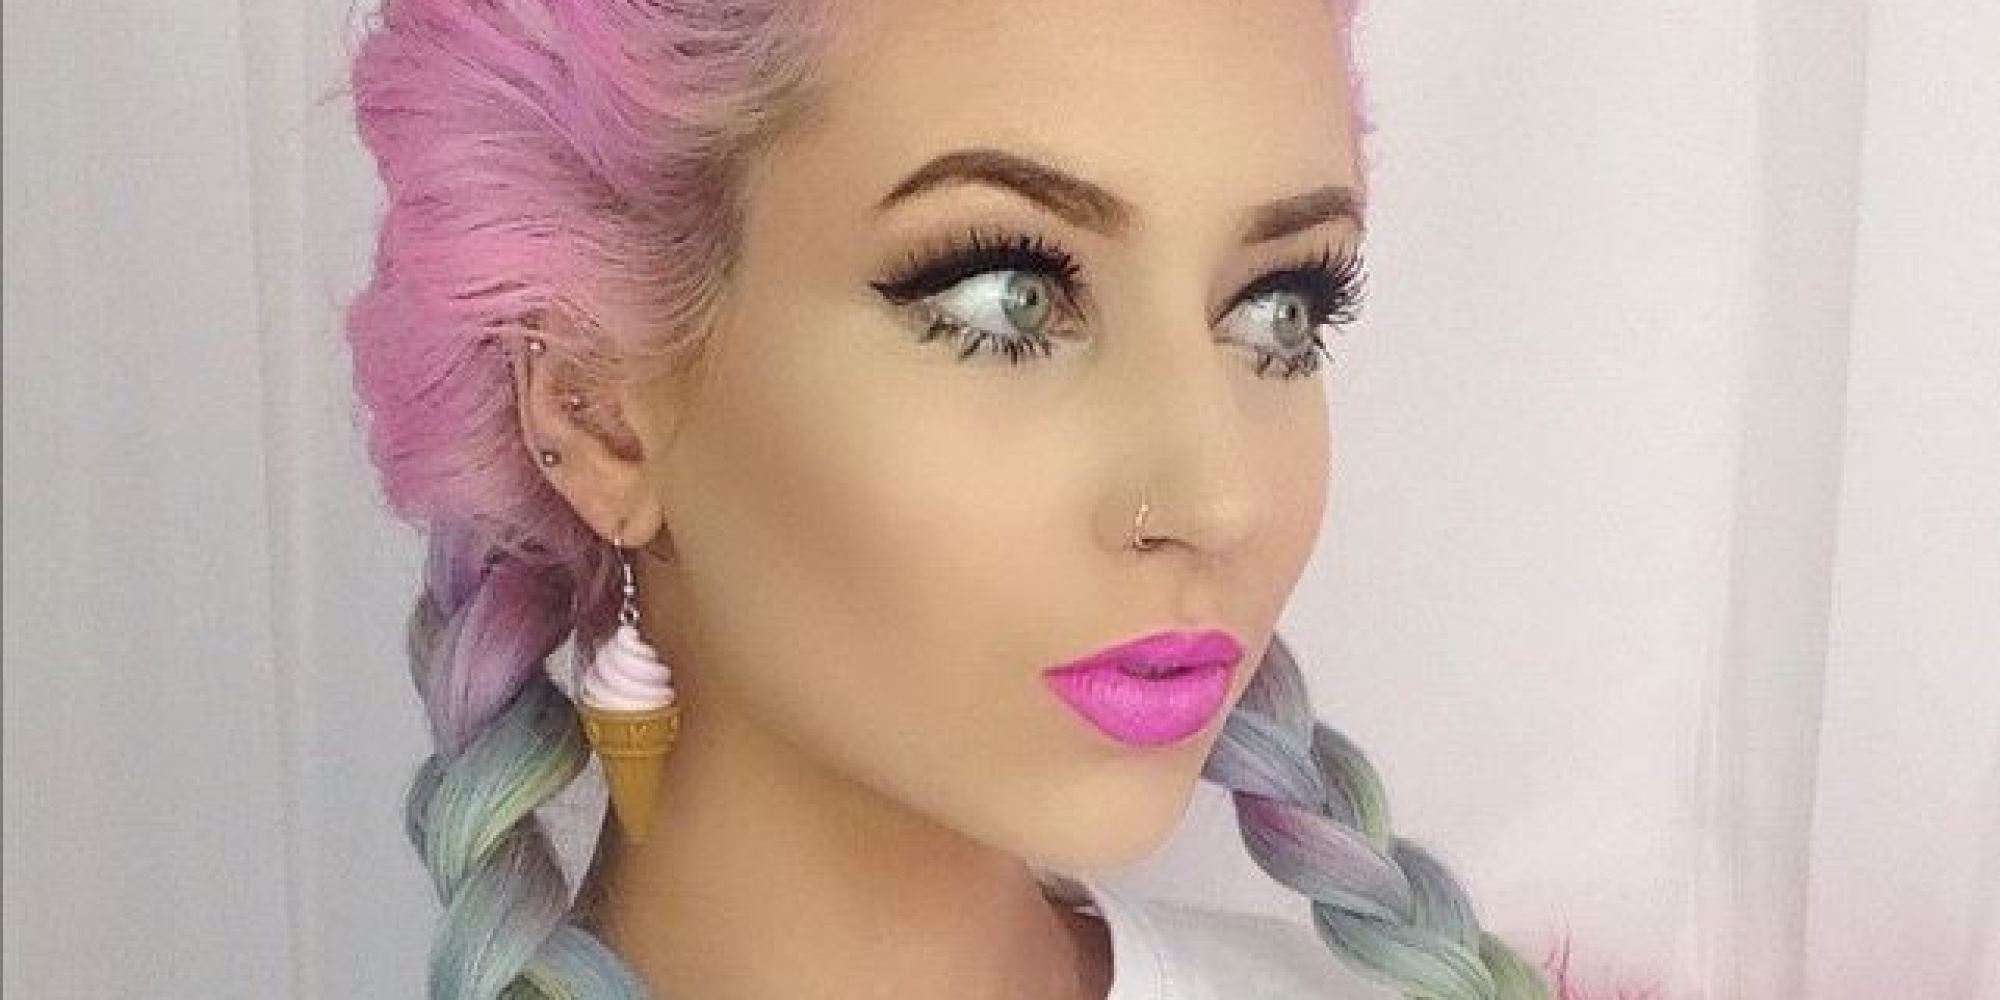 15 photos that prove pastel rainbow hair is the trend of the moment